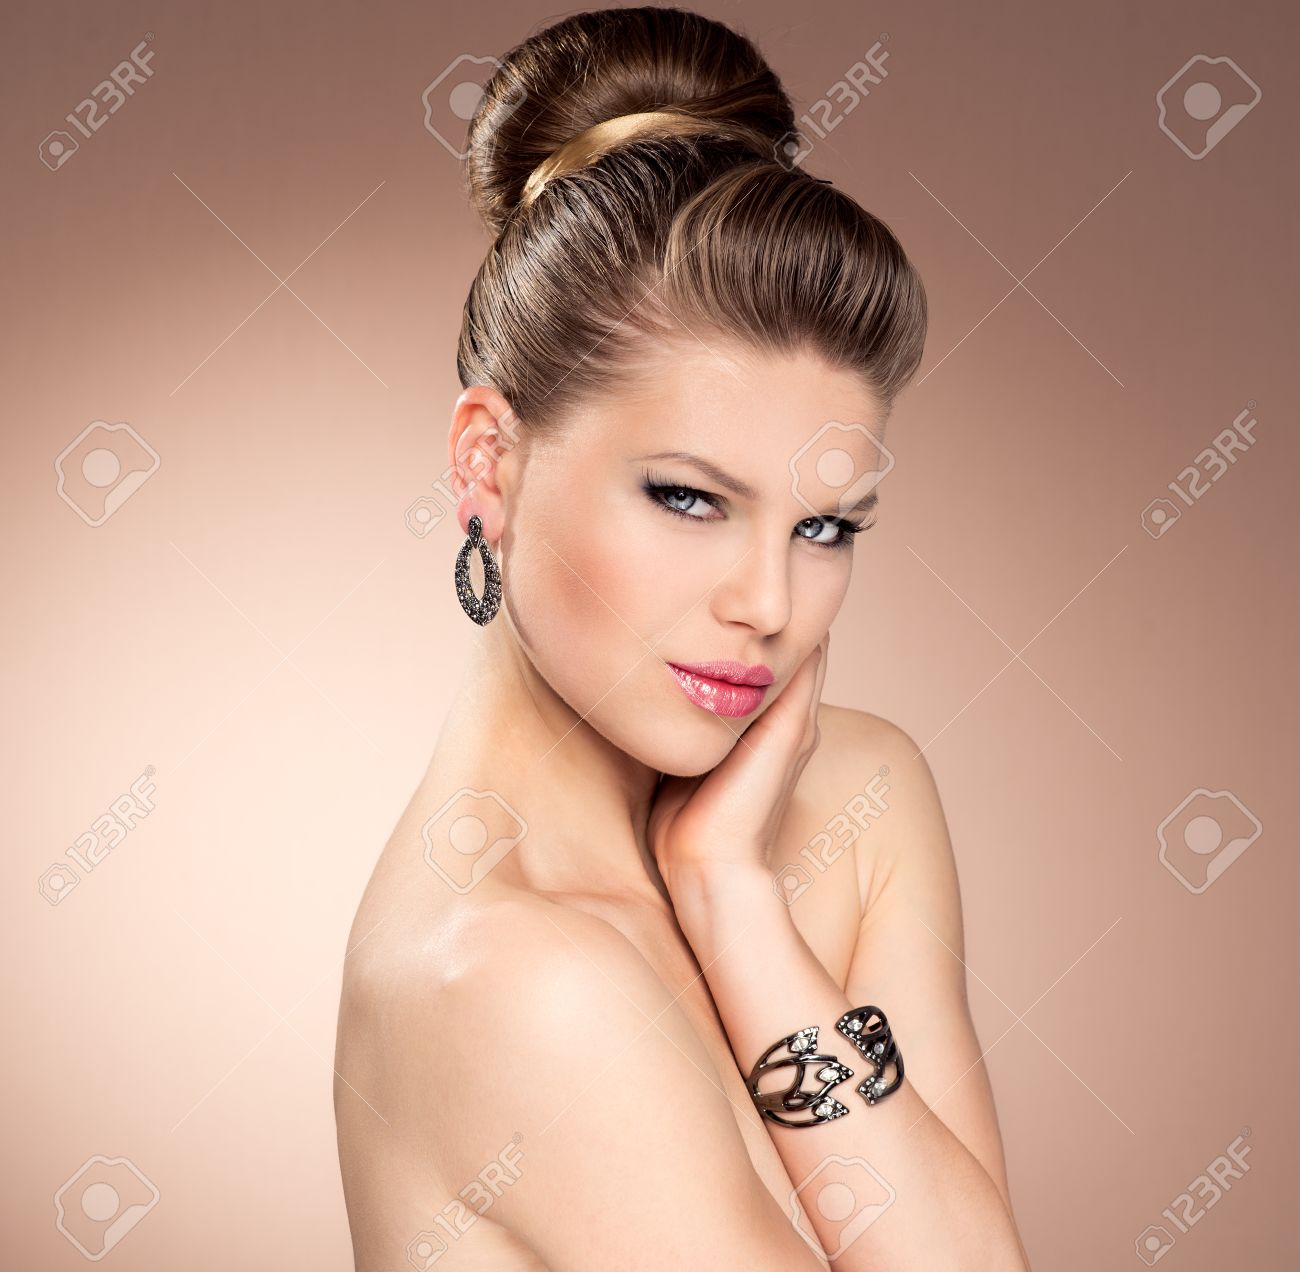 Vintage Style Beautiful Female With Retro Hairdo And Professional